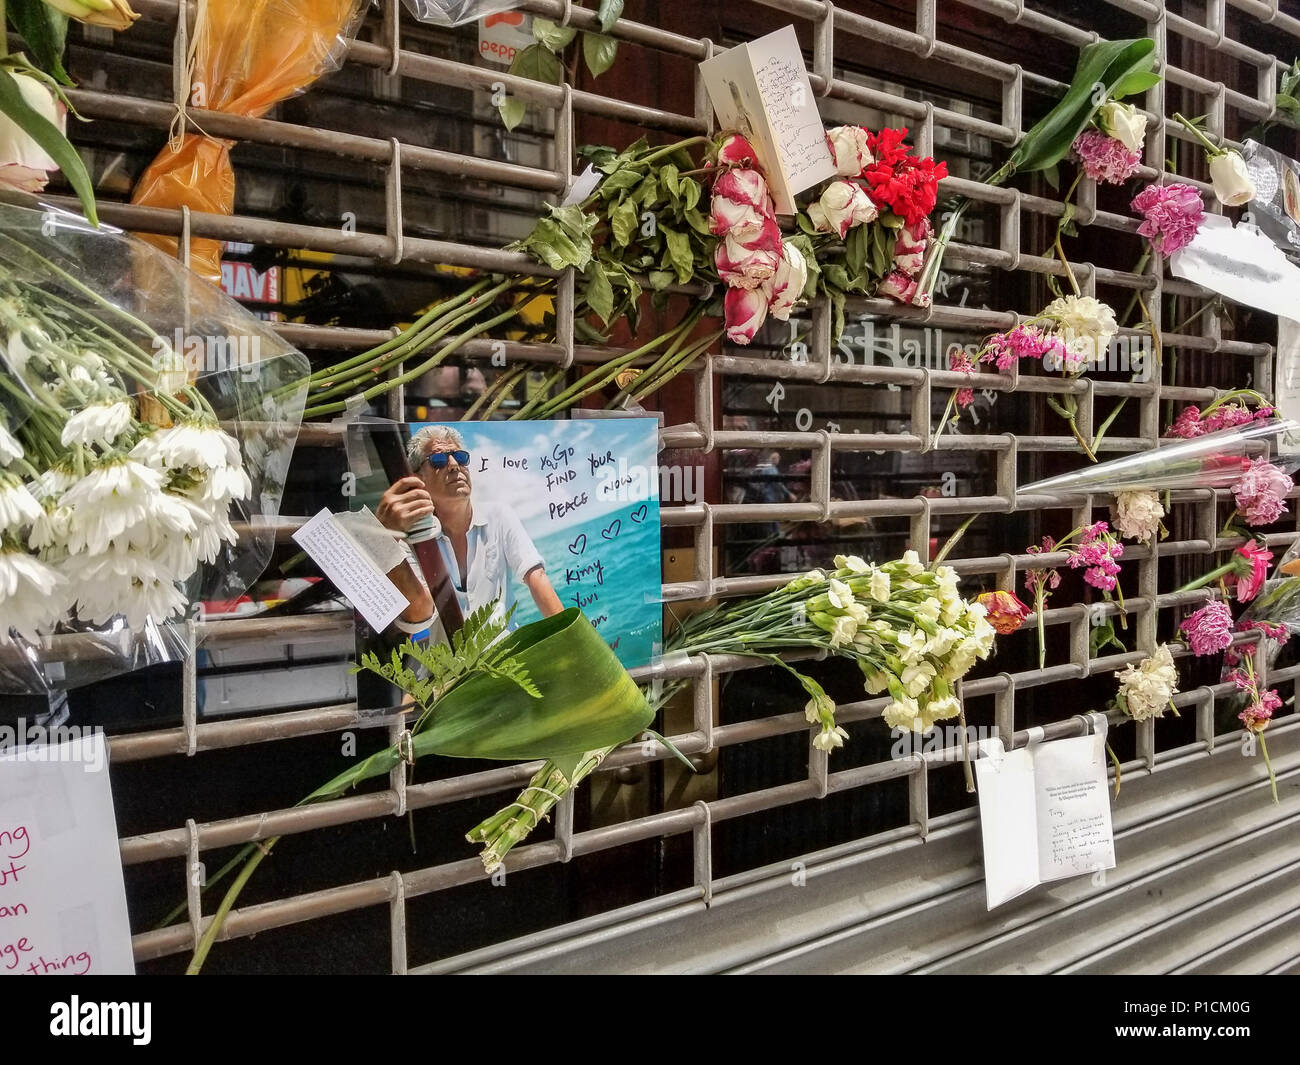 New York, USA, 11th June 2018. Handwritten notes and flowers left, memorializing Anthony Bourdain after his shocking suicide on June 8, 2018. Passersby and fans left items at the downtown location of the Les Halles restaurant, most well-known for being one of the first restaurants to give celebrity chef, author, and television host a start to his cooking career (he worked at the midtown location). Credit: Brigette Supernova/Alamy Live News - Stock Image